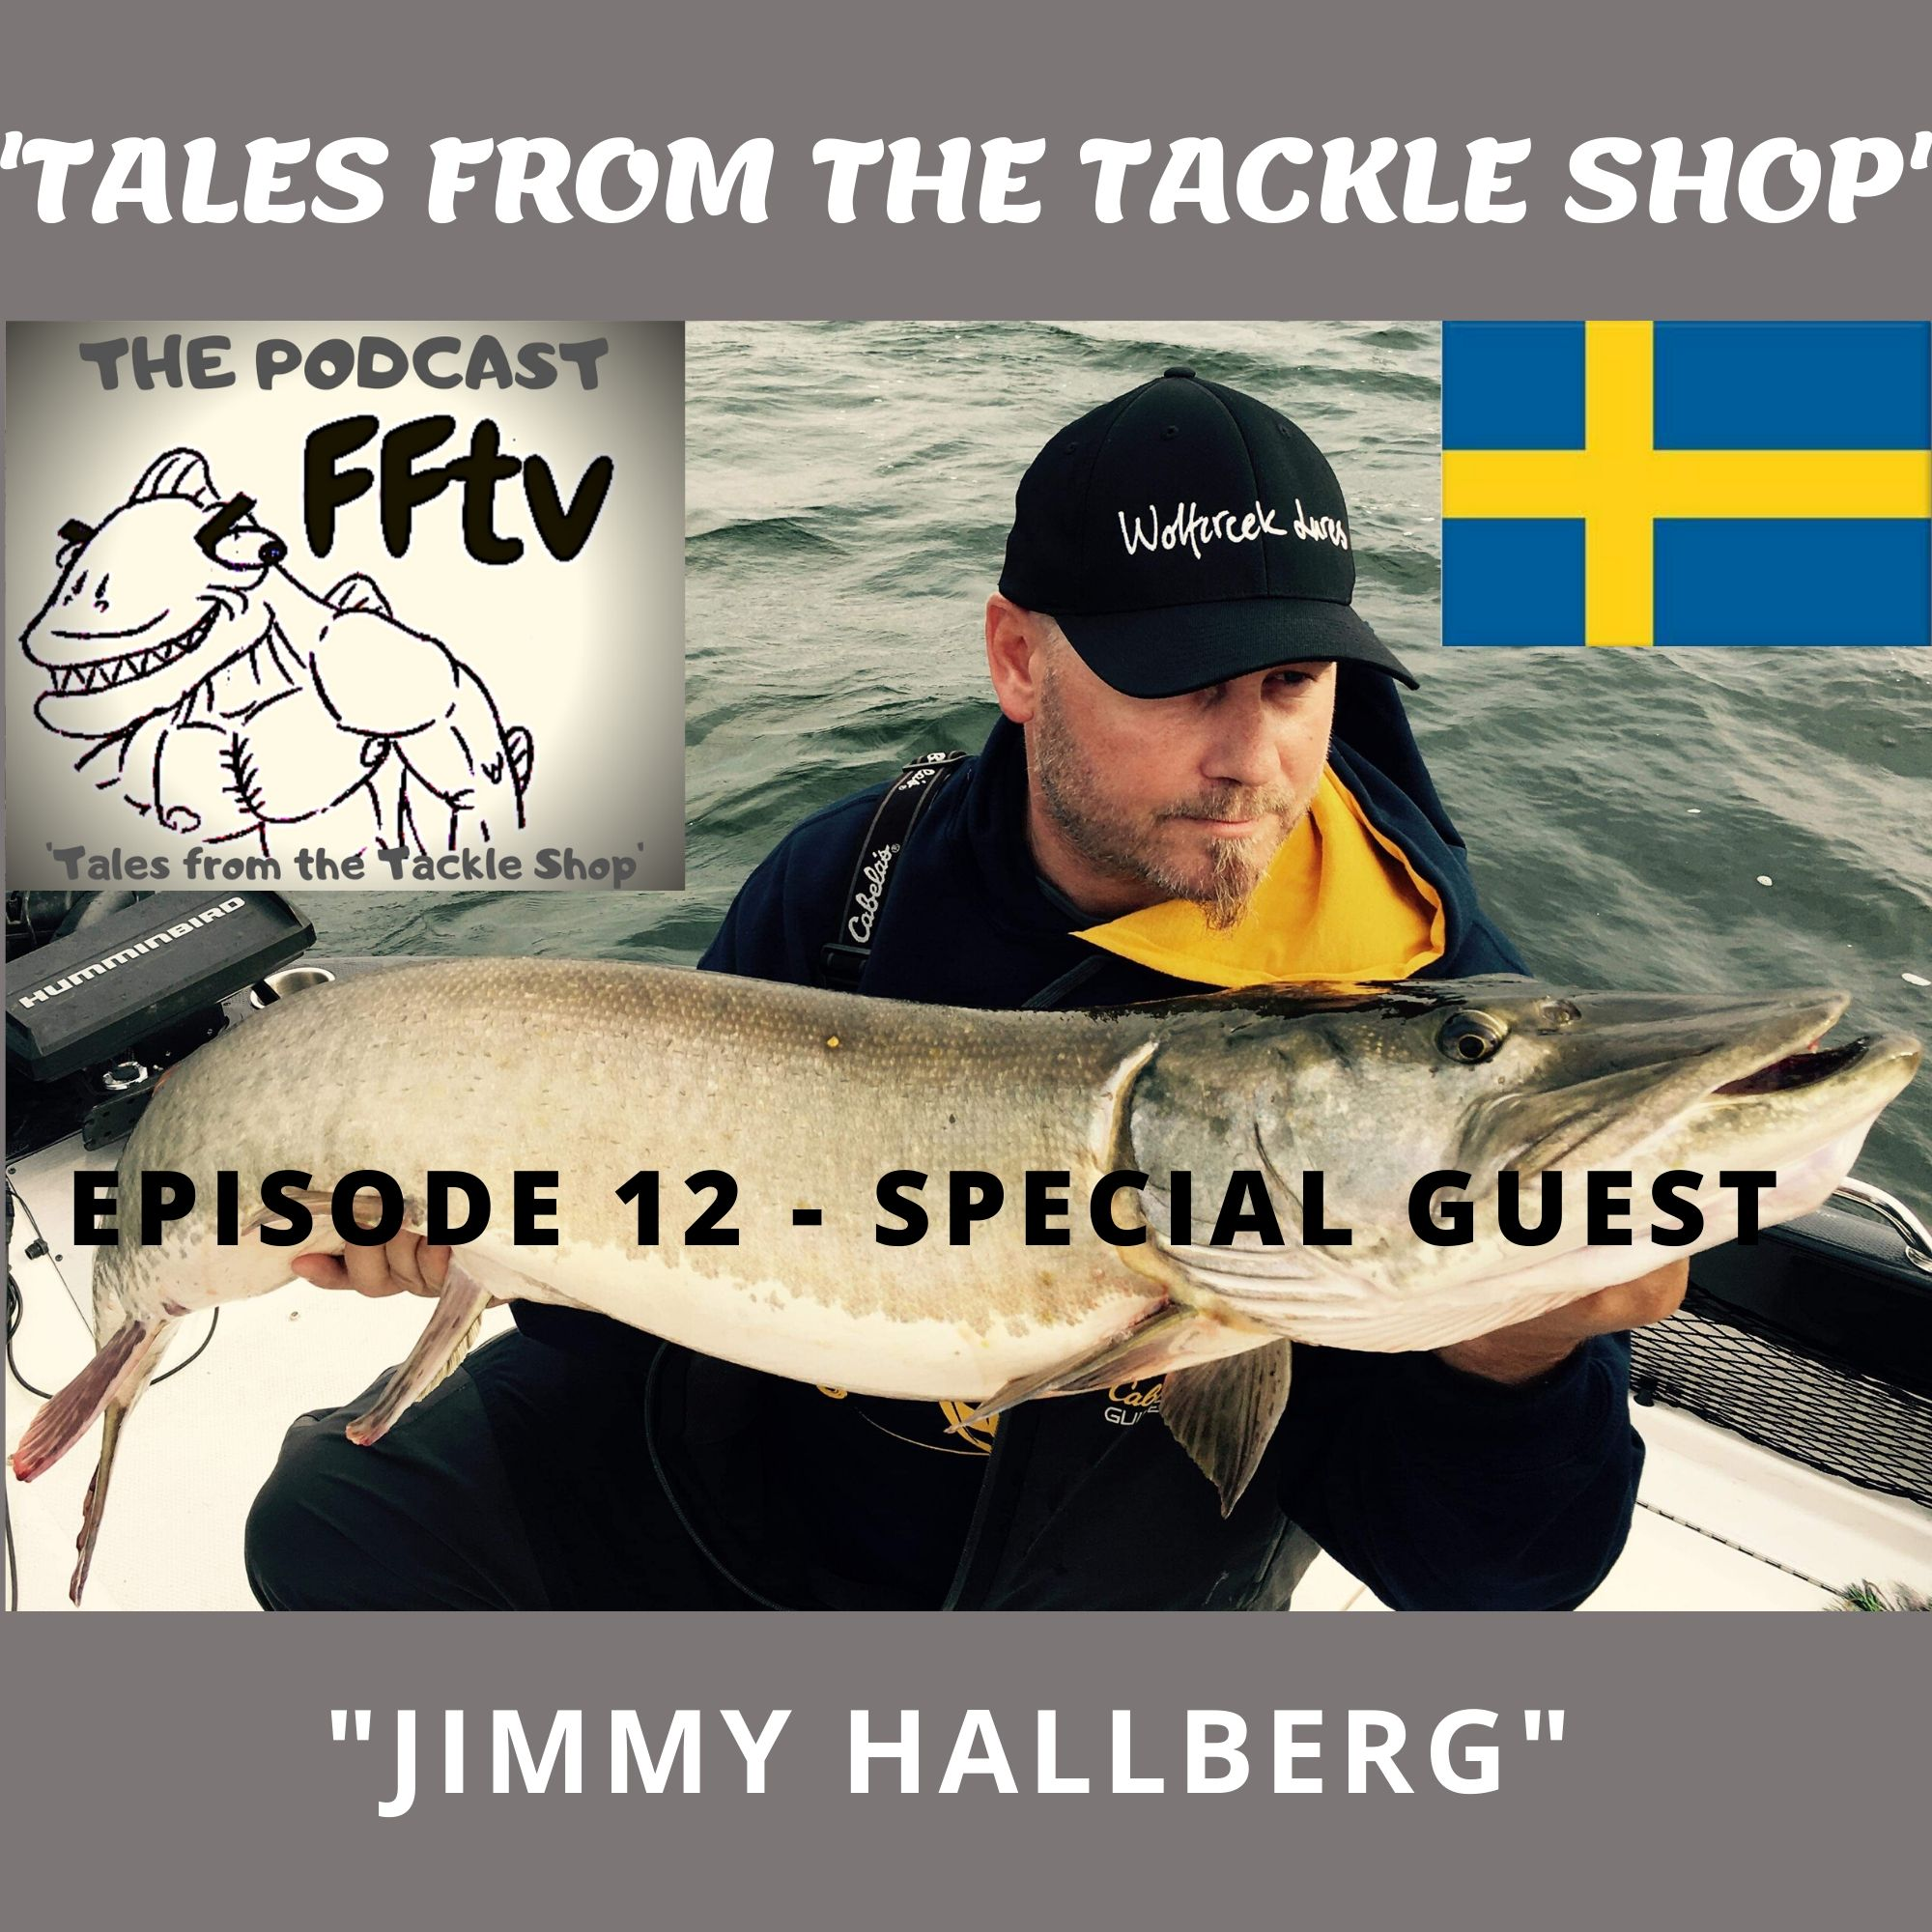 Episode 12, Special guest Jimmy Hallberg